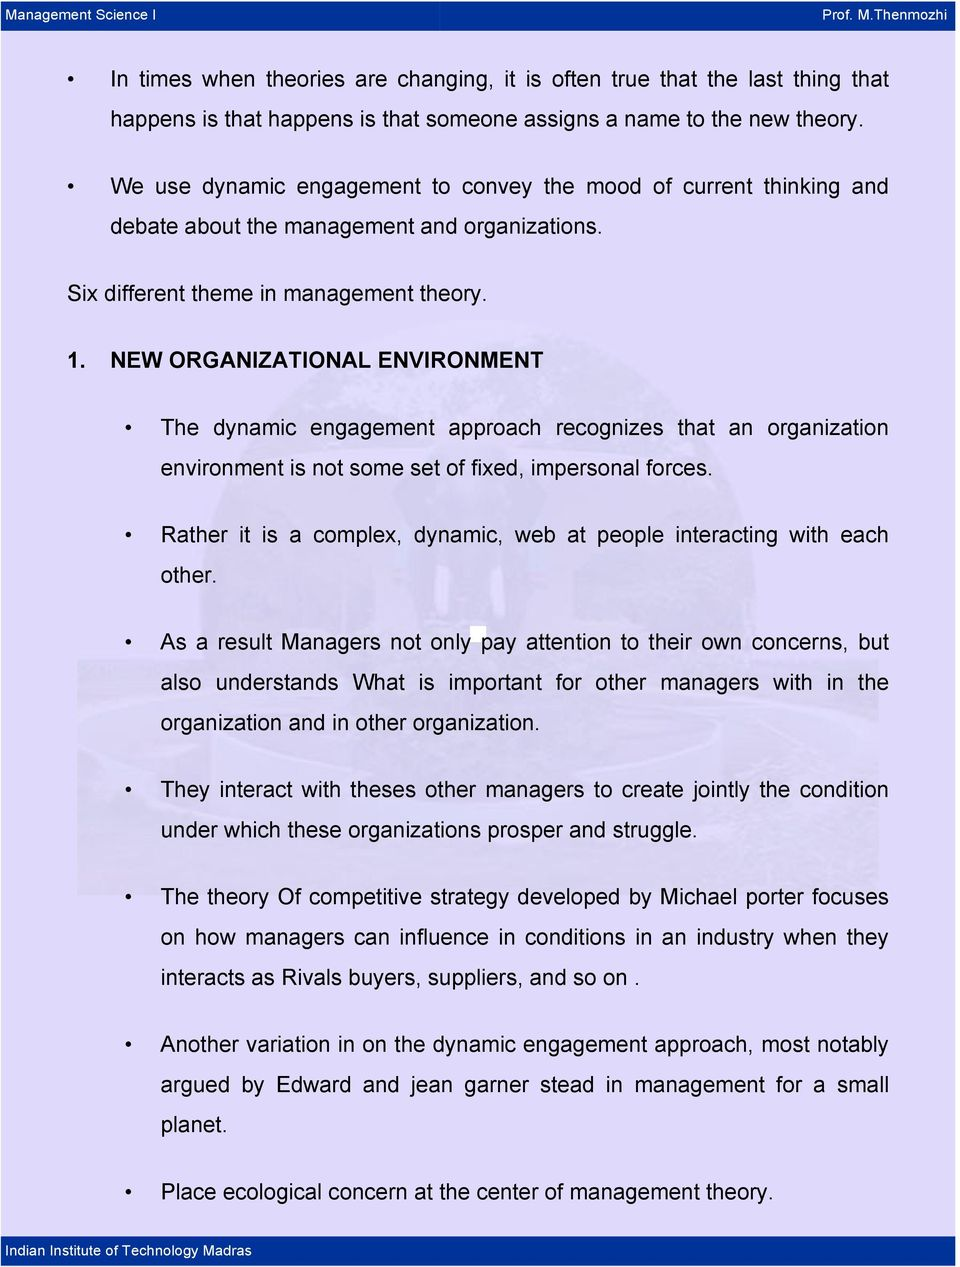 NEW ORGANIZATIONAL ENVIRONMENT The dynamic engagement approach recognizes that an organization environment is not some set of fixed, impersonal forces.